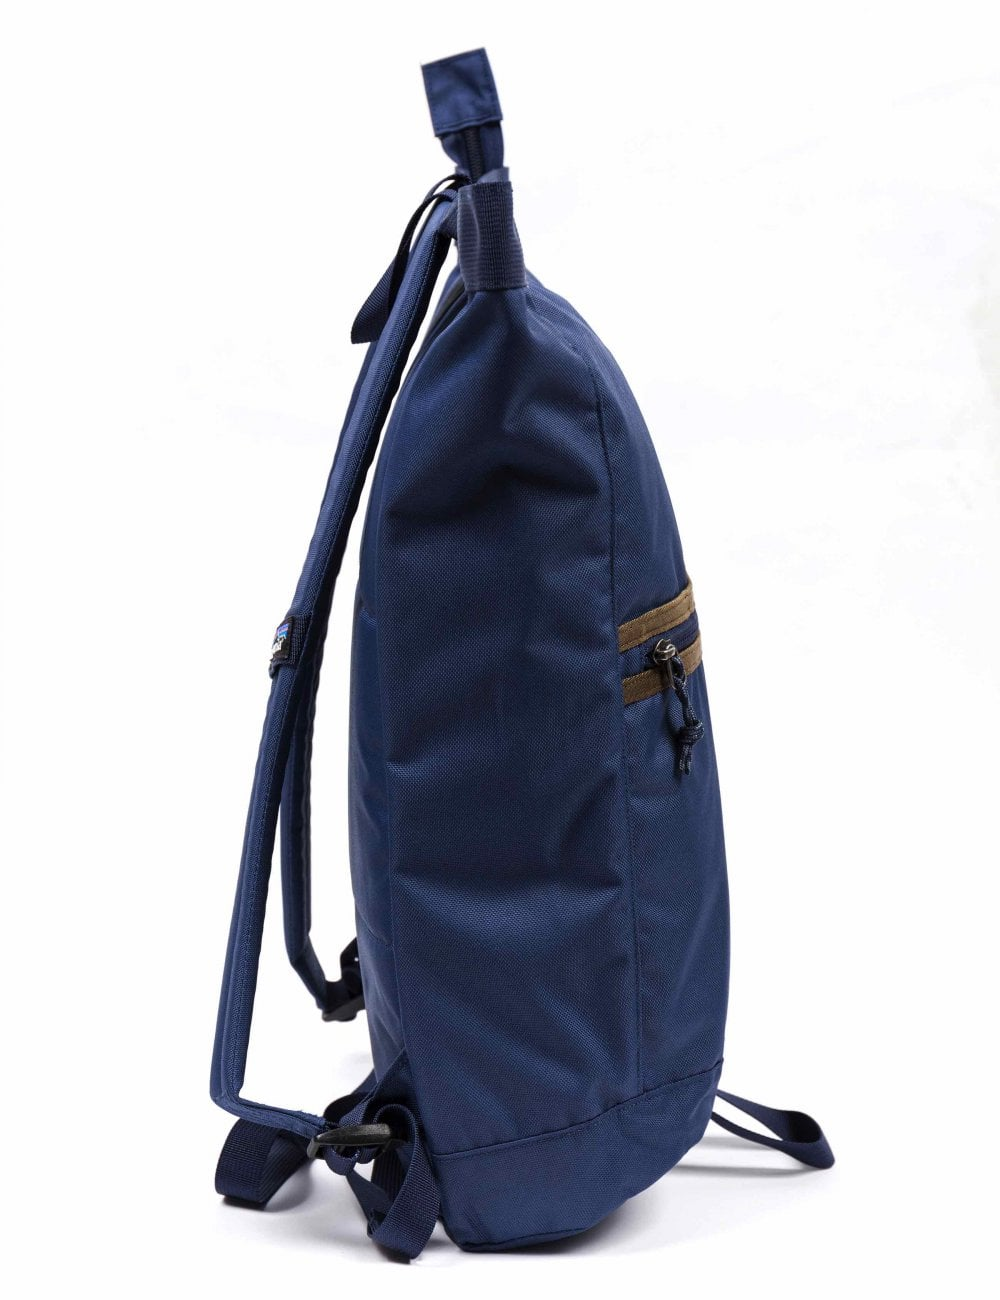 a0f1339c9d328 Patagonia Arbor Market Backpack 15L - Classic Navy - Accessories ...